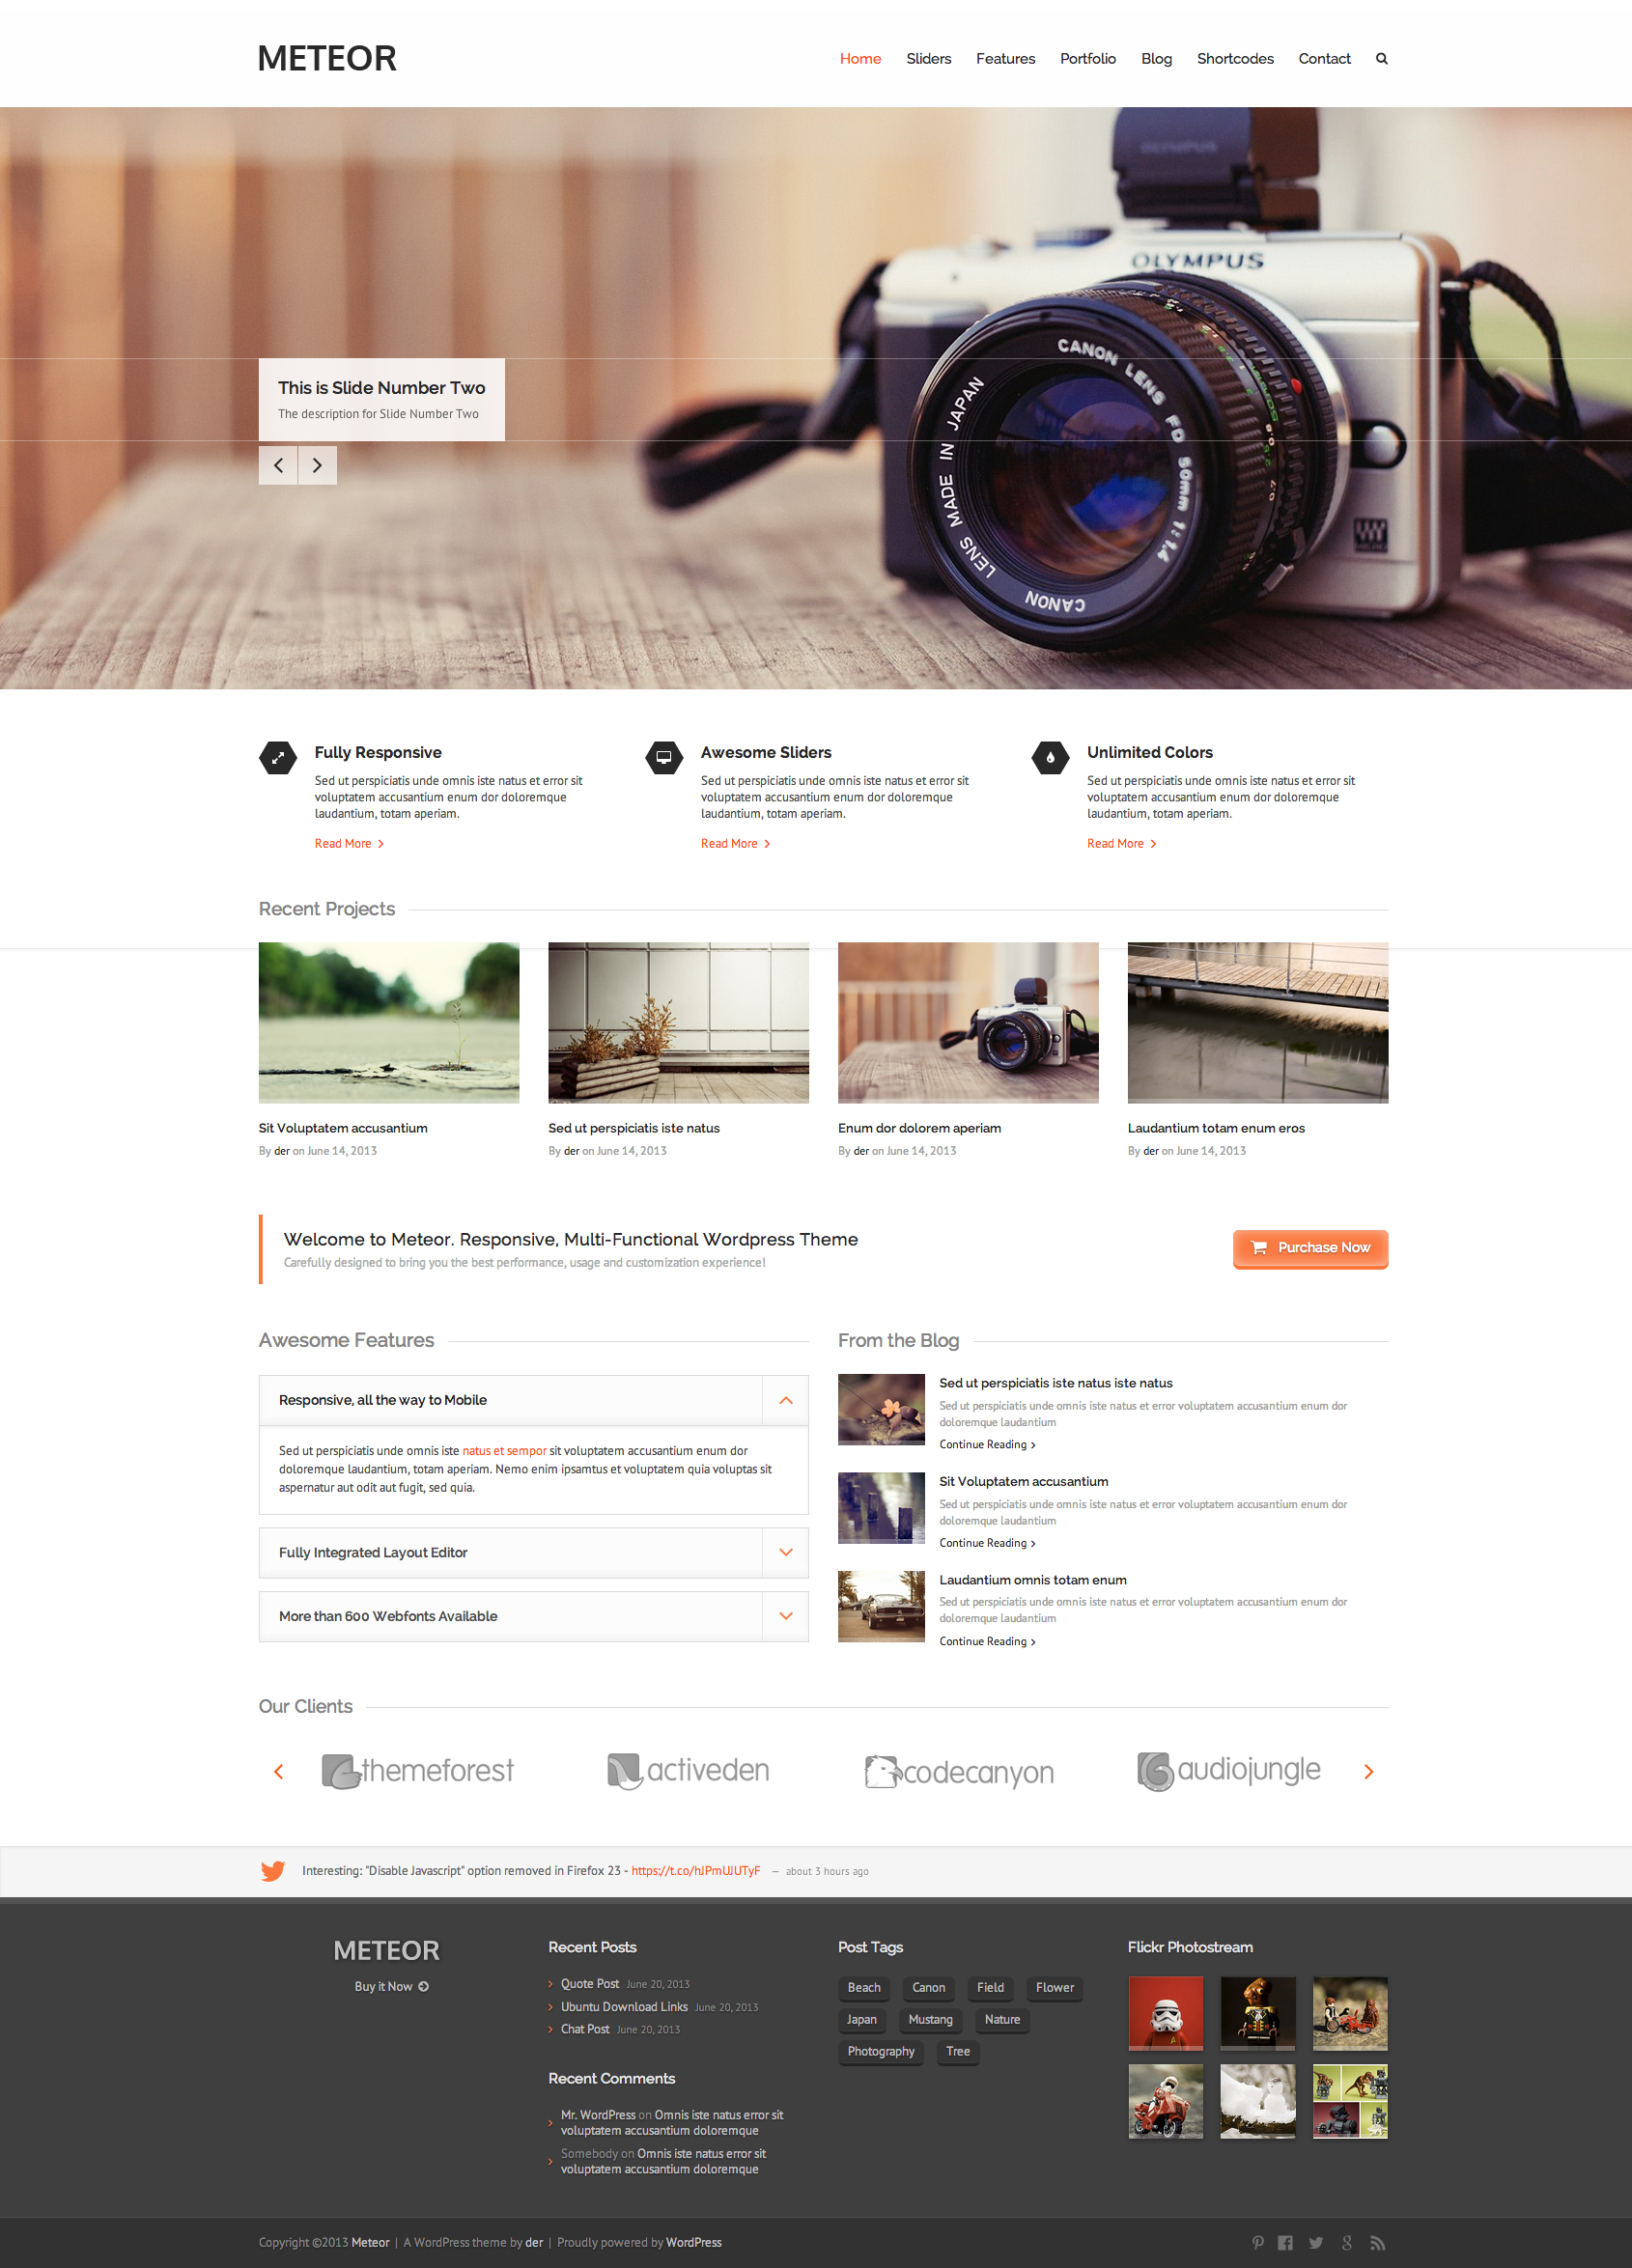 Awesome css designs - Meteor Retina Responsive Wordpress Theme Wordpress Theme Template Webdesign Webpage